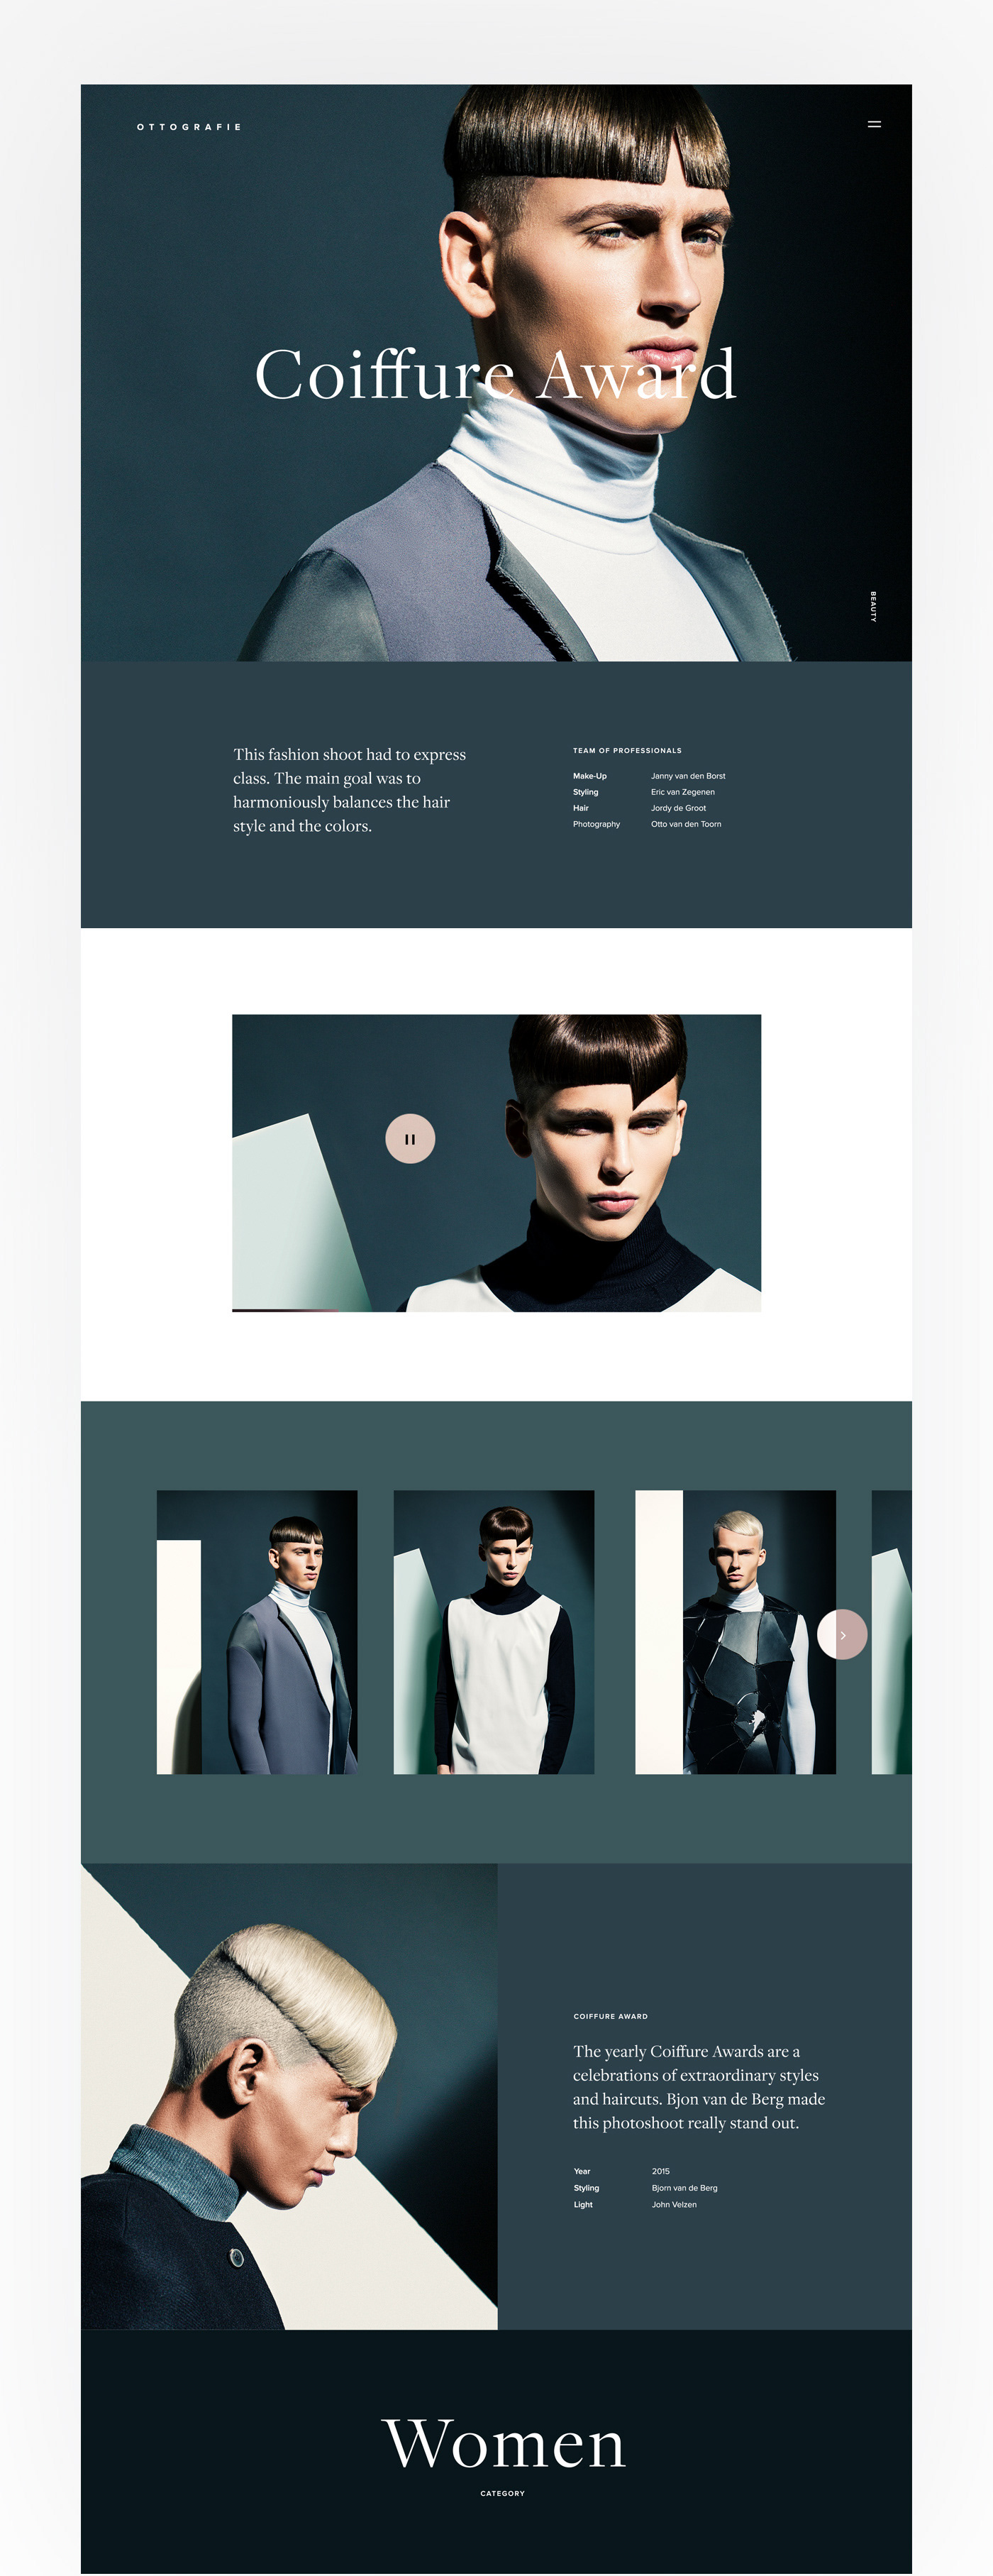 Project page for a fashion experience website